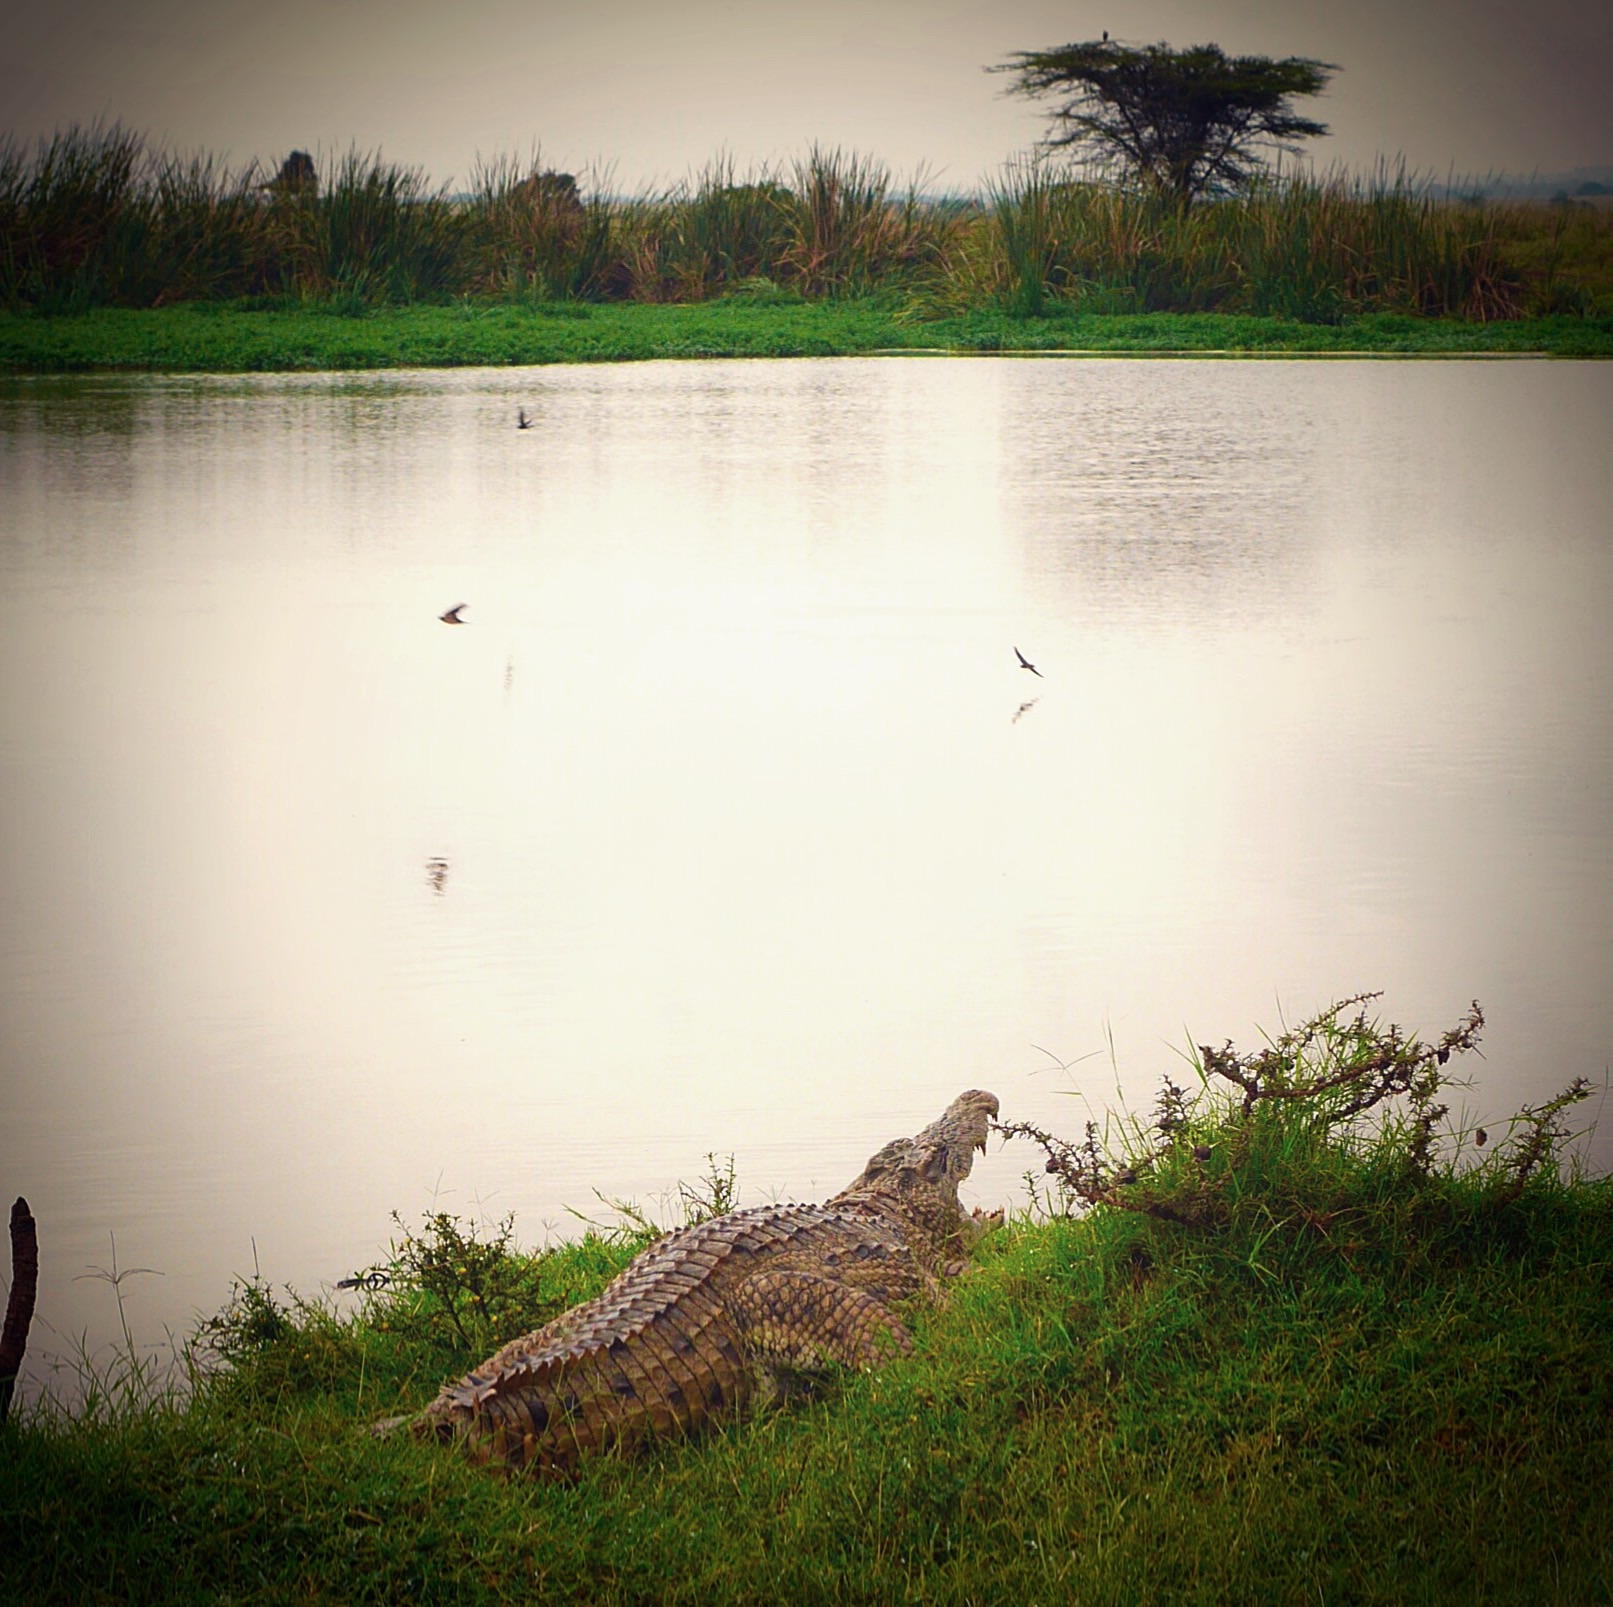 Crocodiles at Nairobi National Park